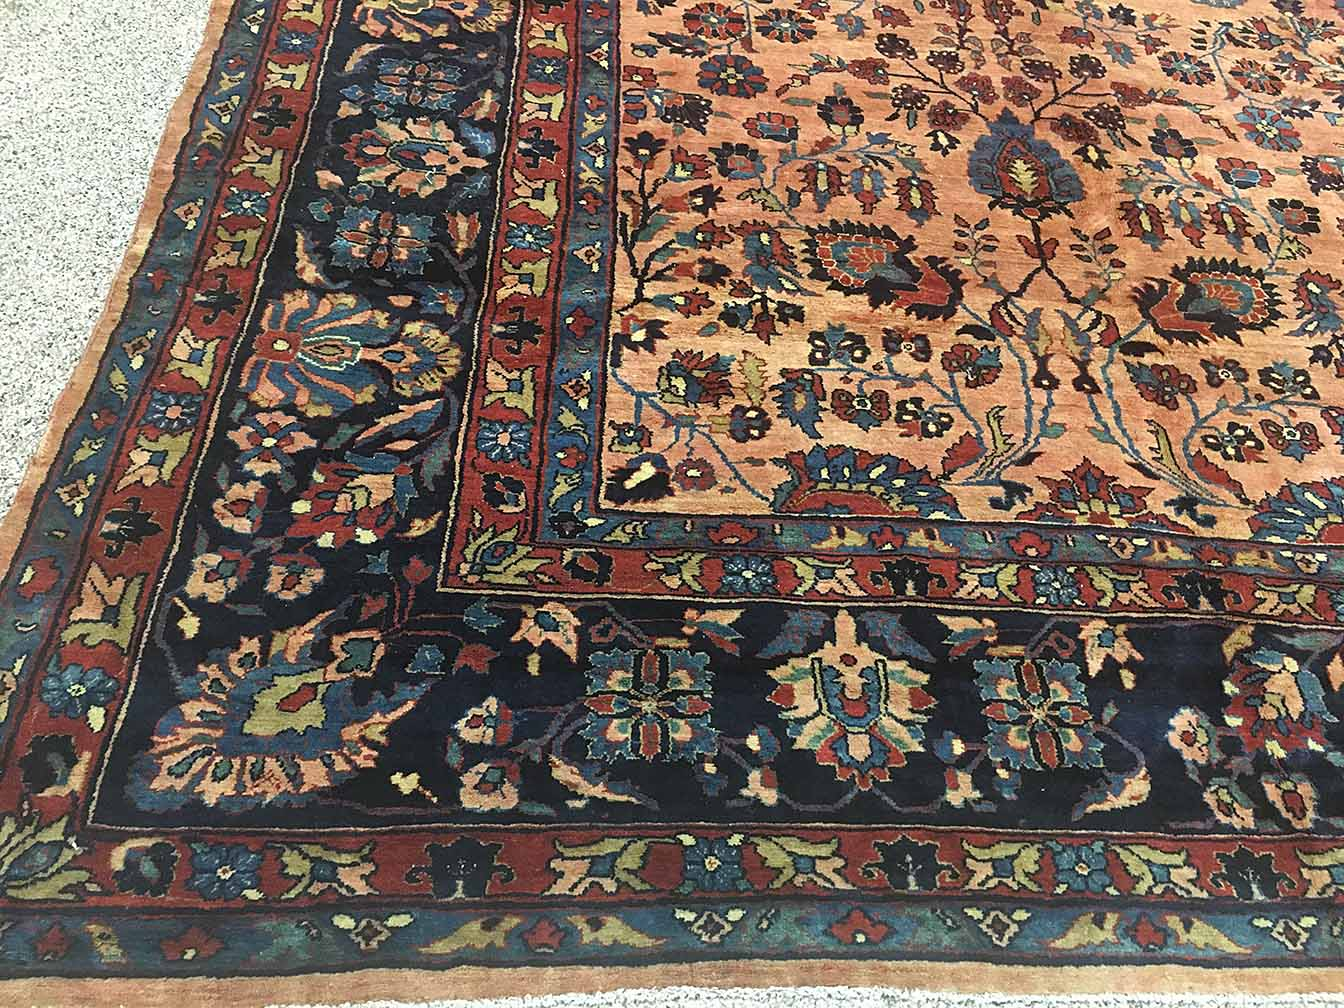 Antique malayer Carpet - # 54377